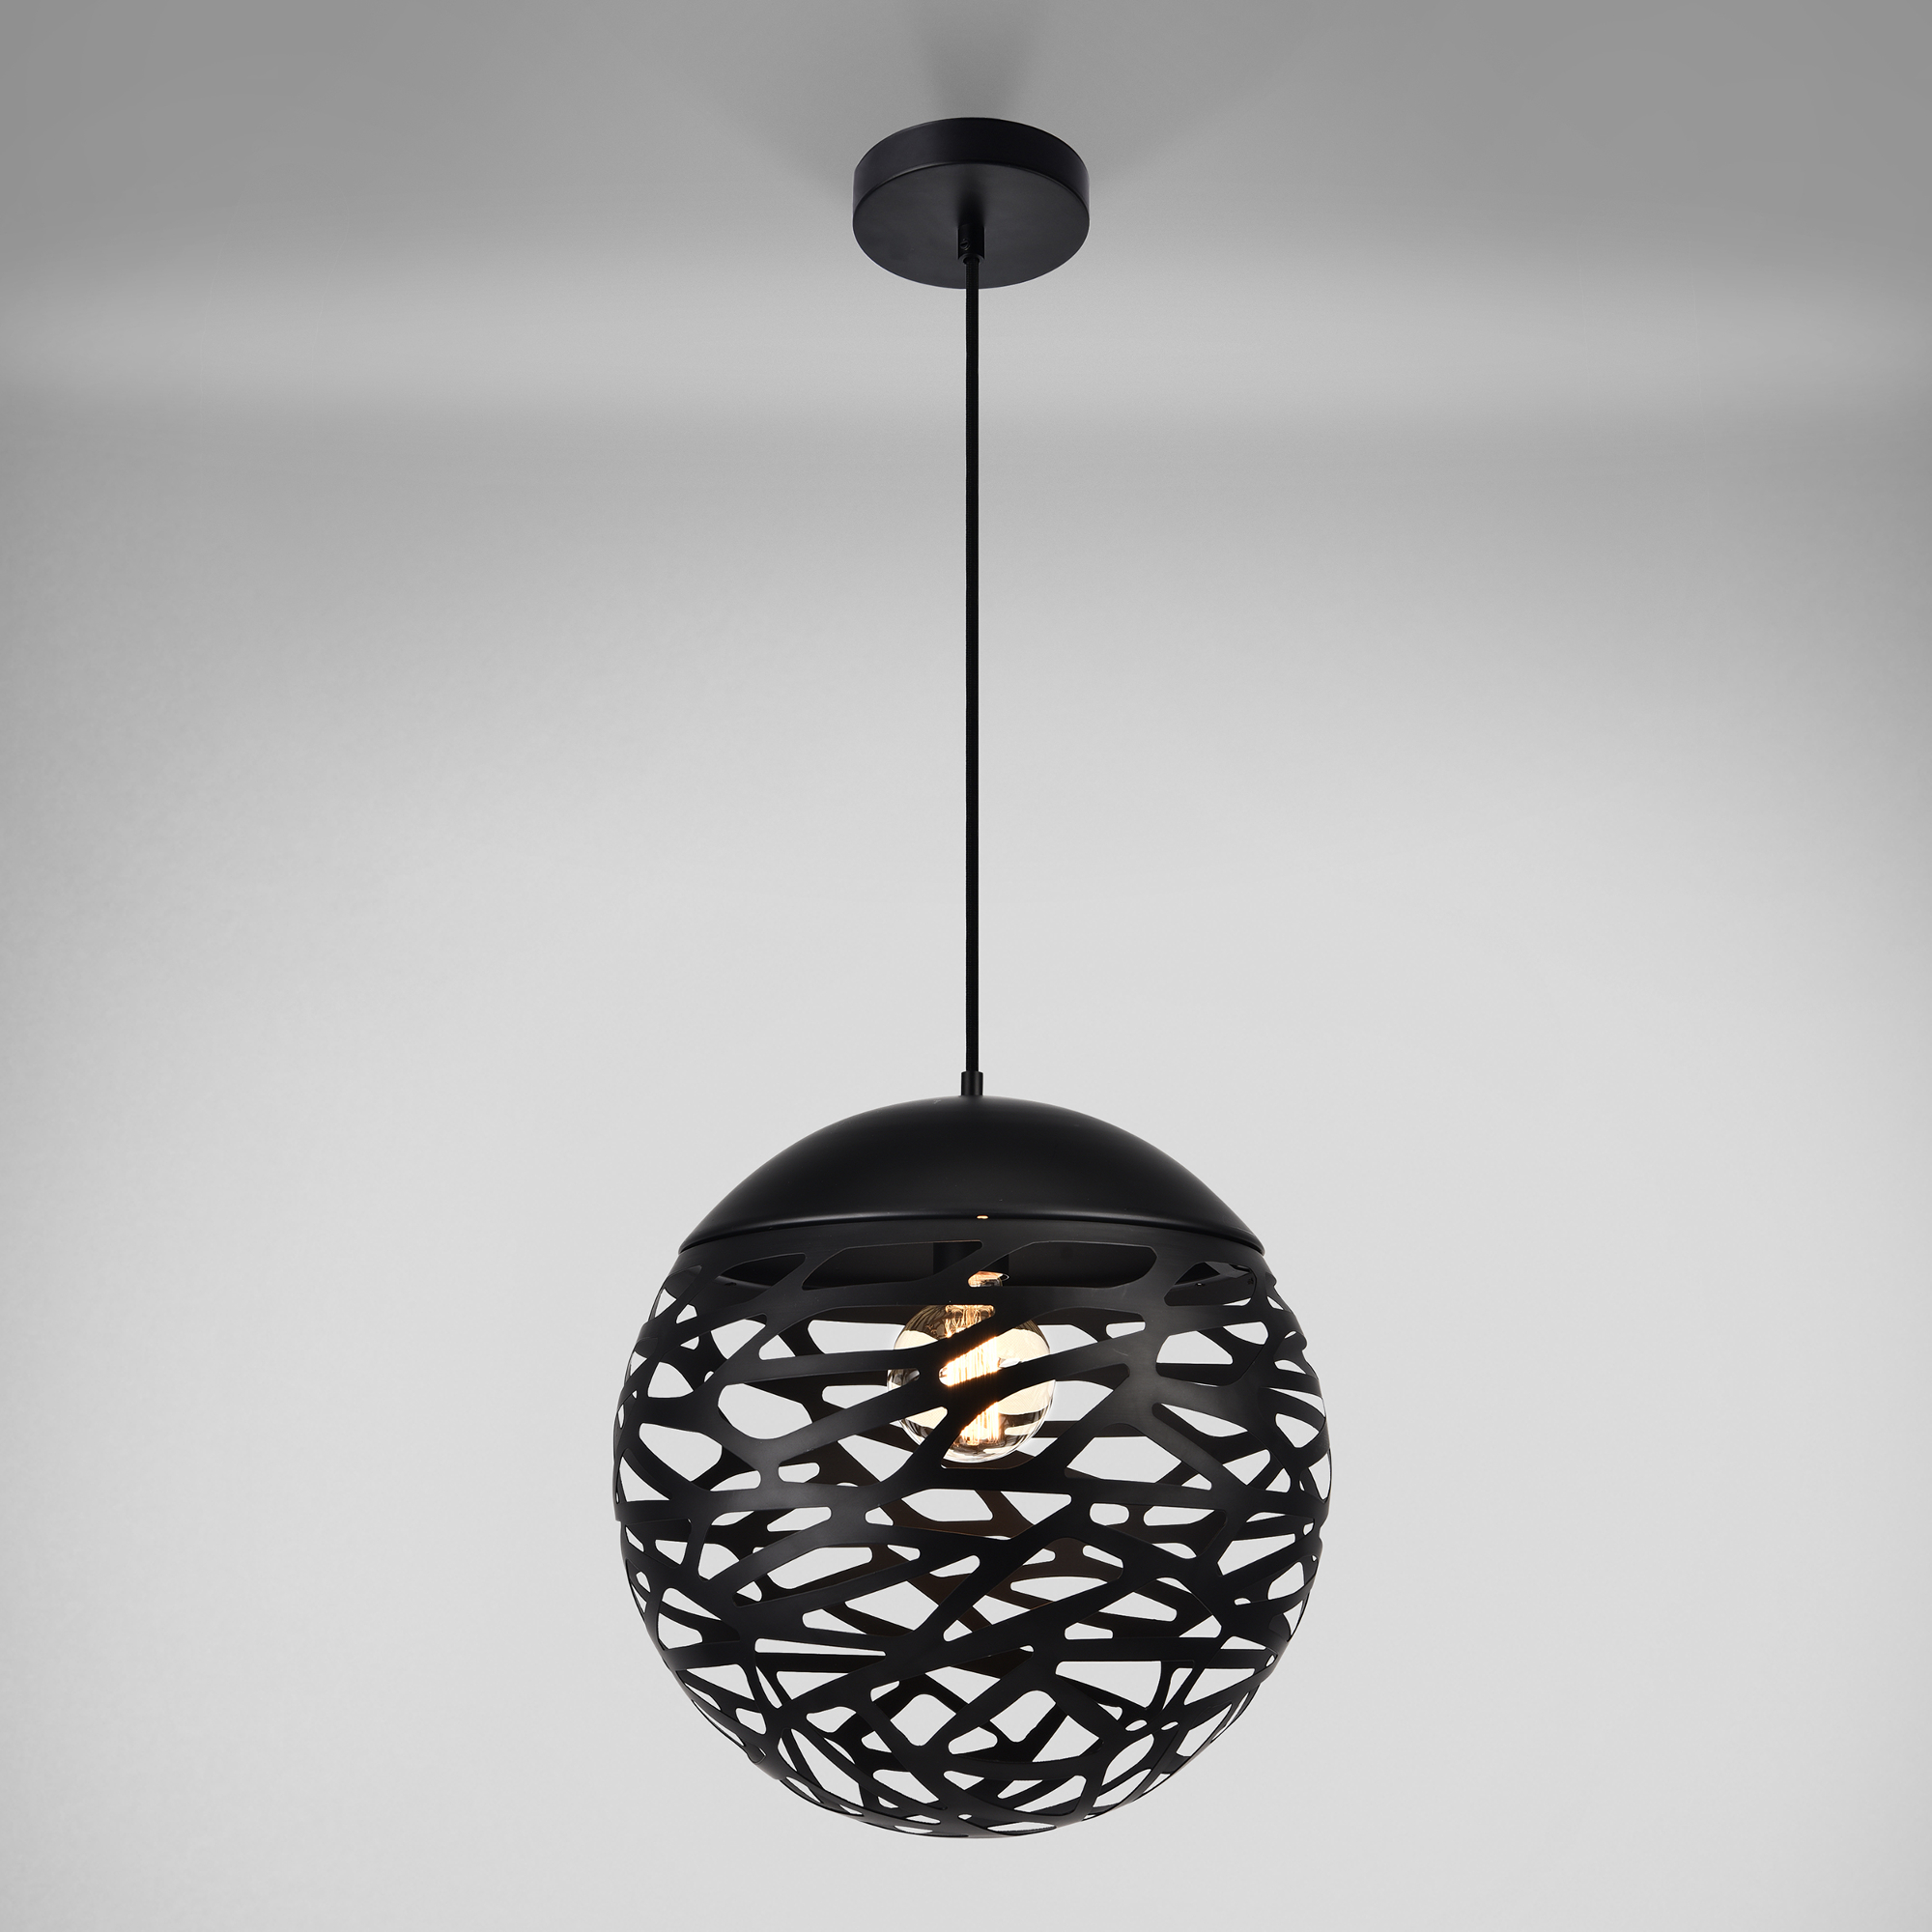 suspension 100 design m tal noir plafonnier luminaire suspendu ebay. Black Bedroom Furniture Sets. Home Design Ideas